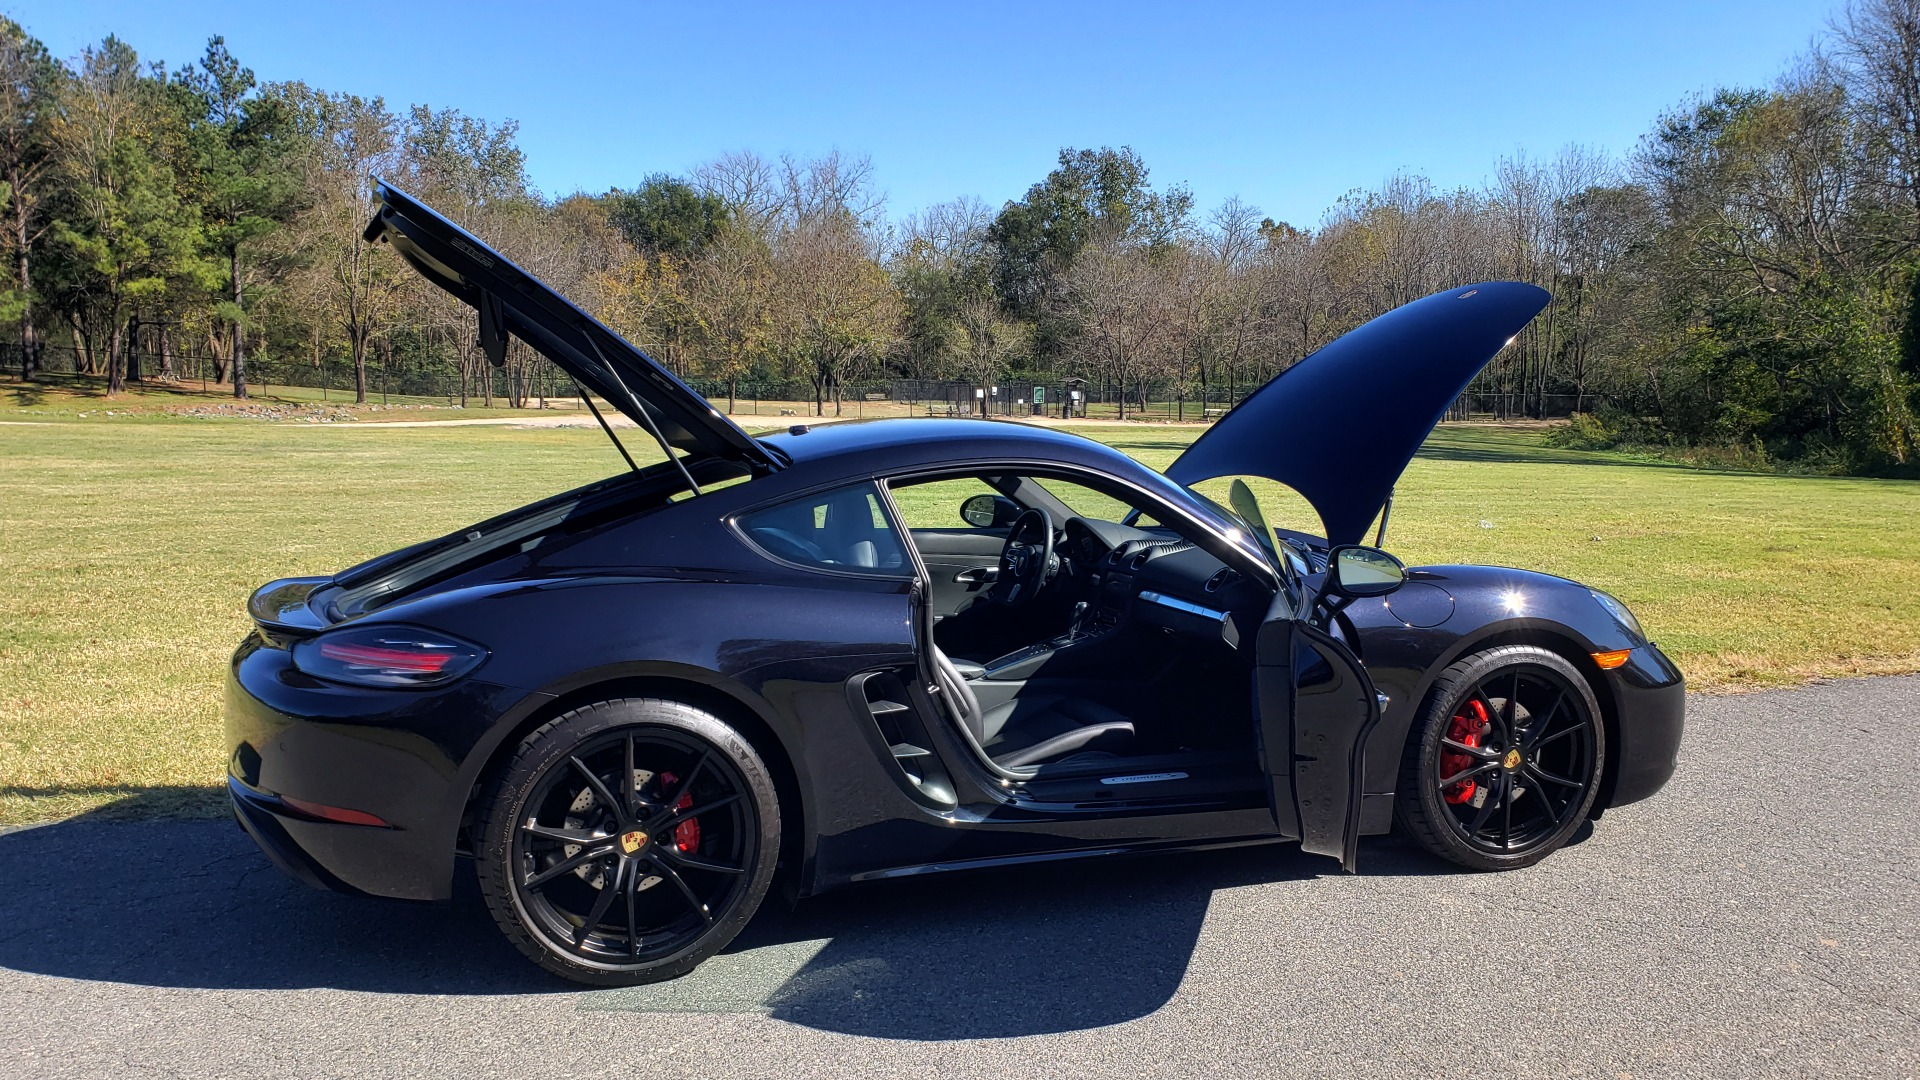 Used 2019 Porsche 718 CAYMAN S COUPE / PDK TRANS / LCA / BOSE / HTD STS / LIGHT DESIGN PKG for sale $67,999 at Formula Imports in Charlotte NC 28227 25